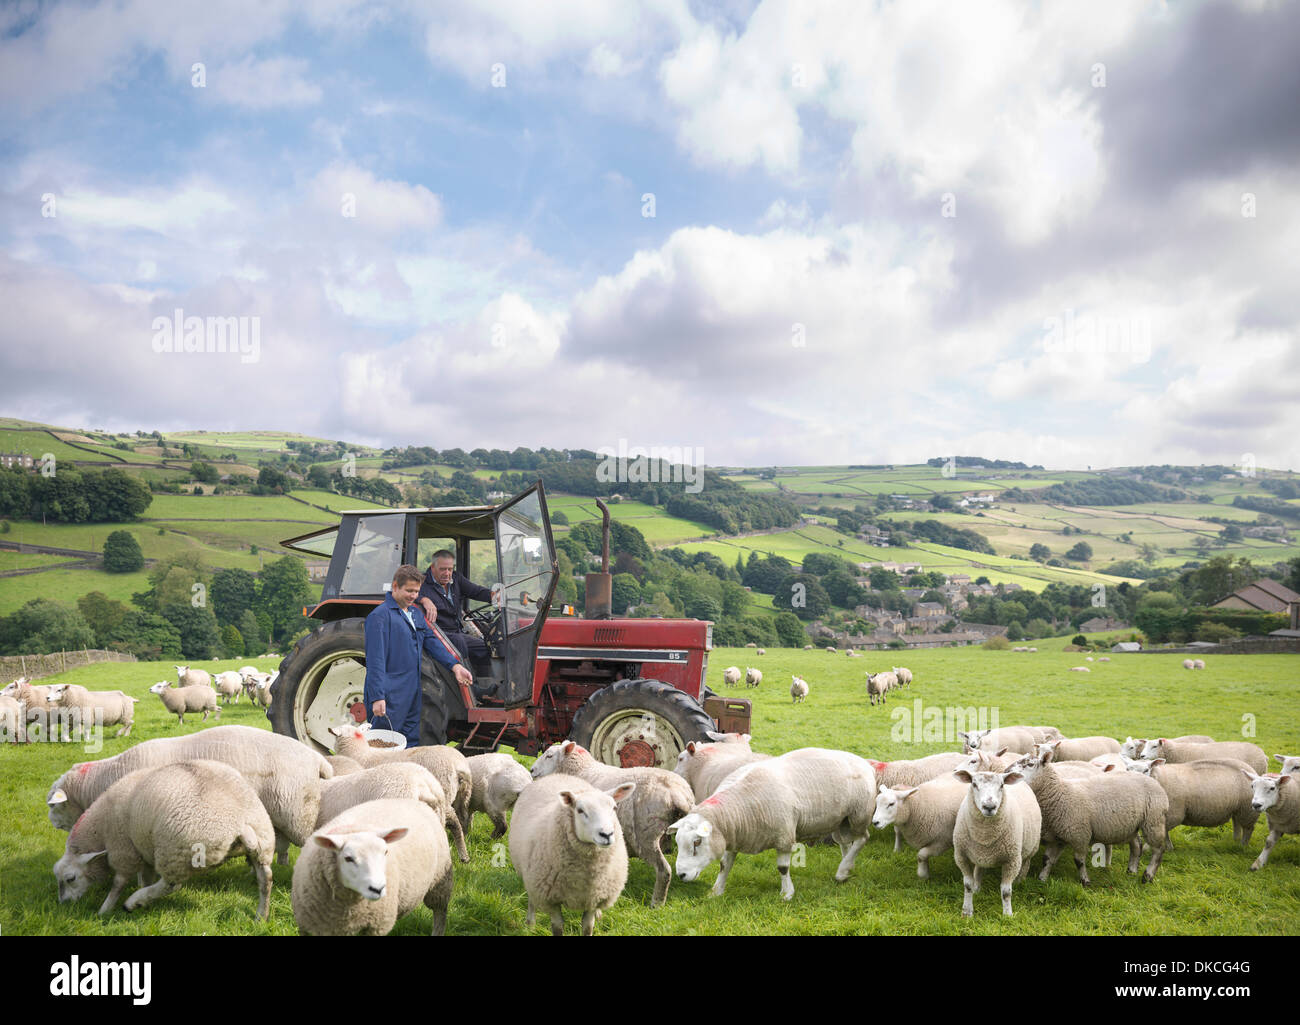 Farmer in tractor with son watching sheep in field - Stock Image